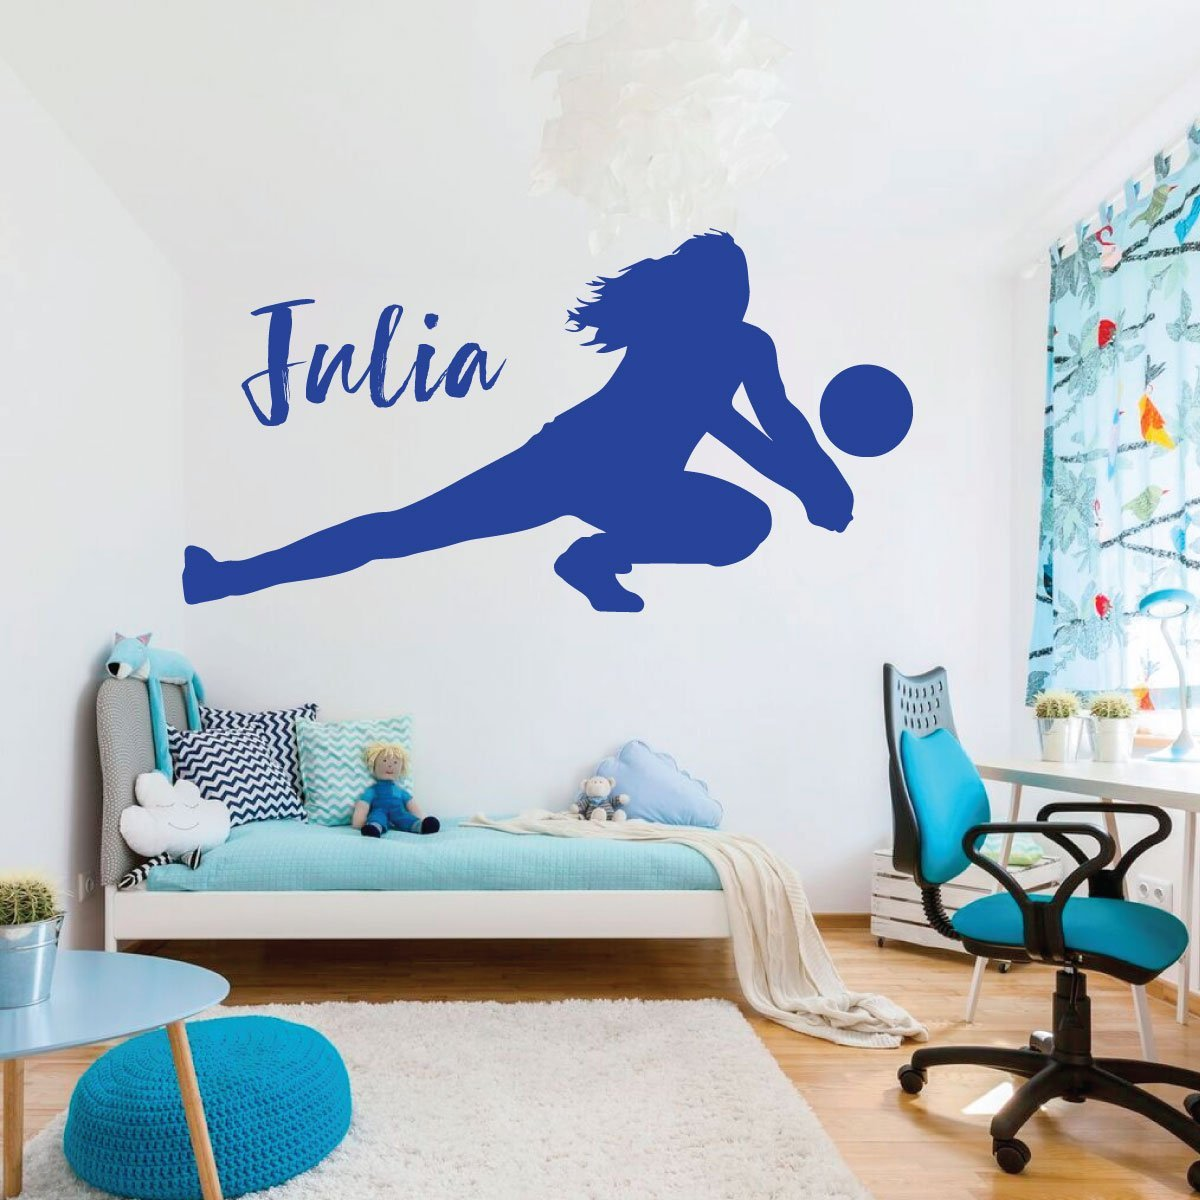 Sports Decorations Personalized Vinyl Decor For Girls Bedroom or Playroom Volleyball Wall Decal